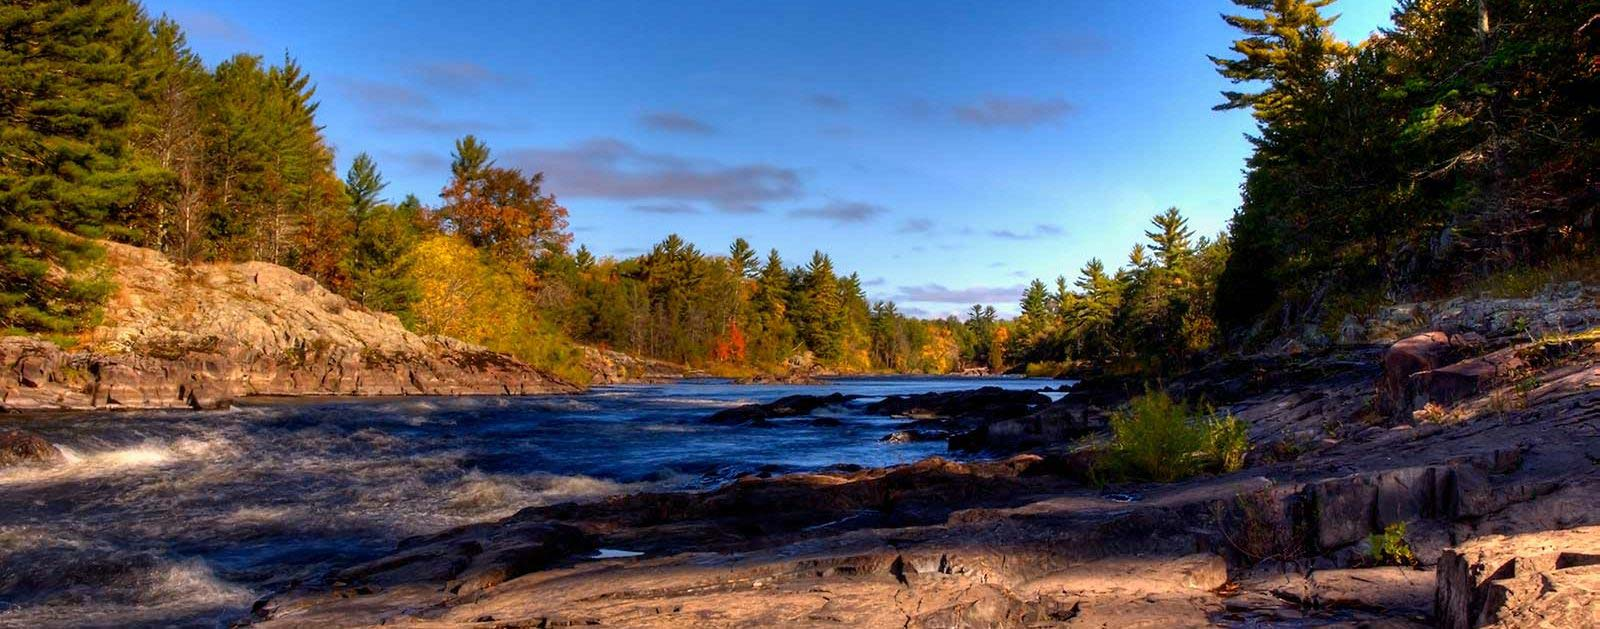 The Menominee River in fall